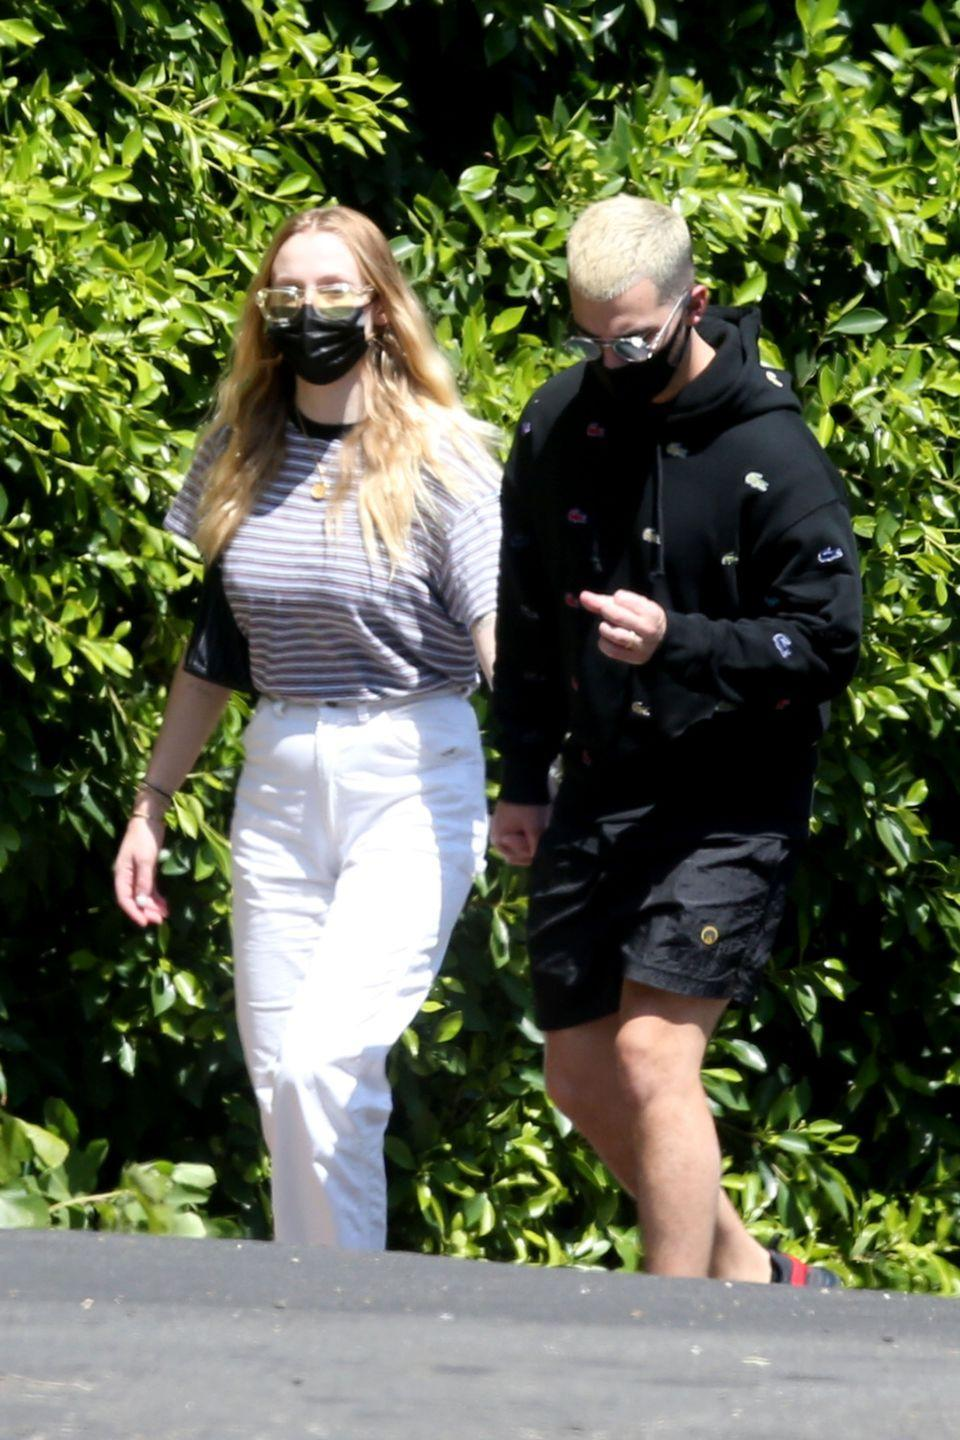 Sophie Turner & Joe Jonas Hold Hands During a Walk After Welcoming Baby Willa